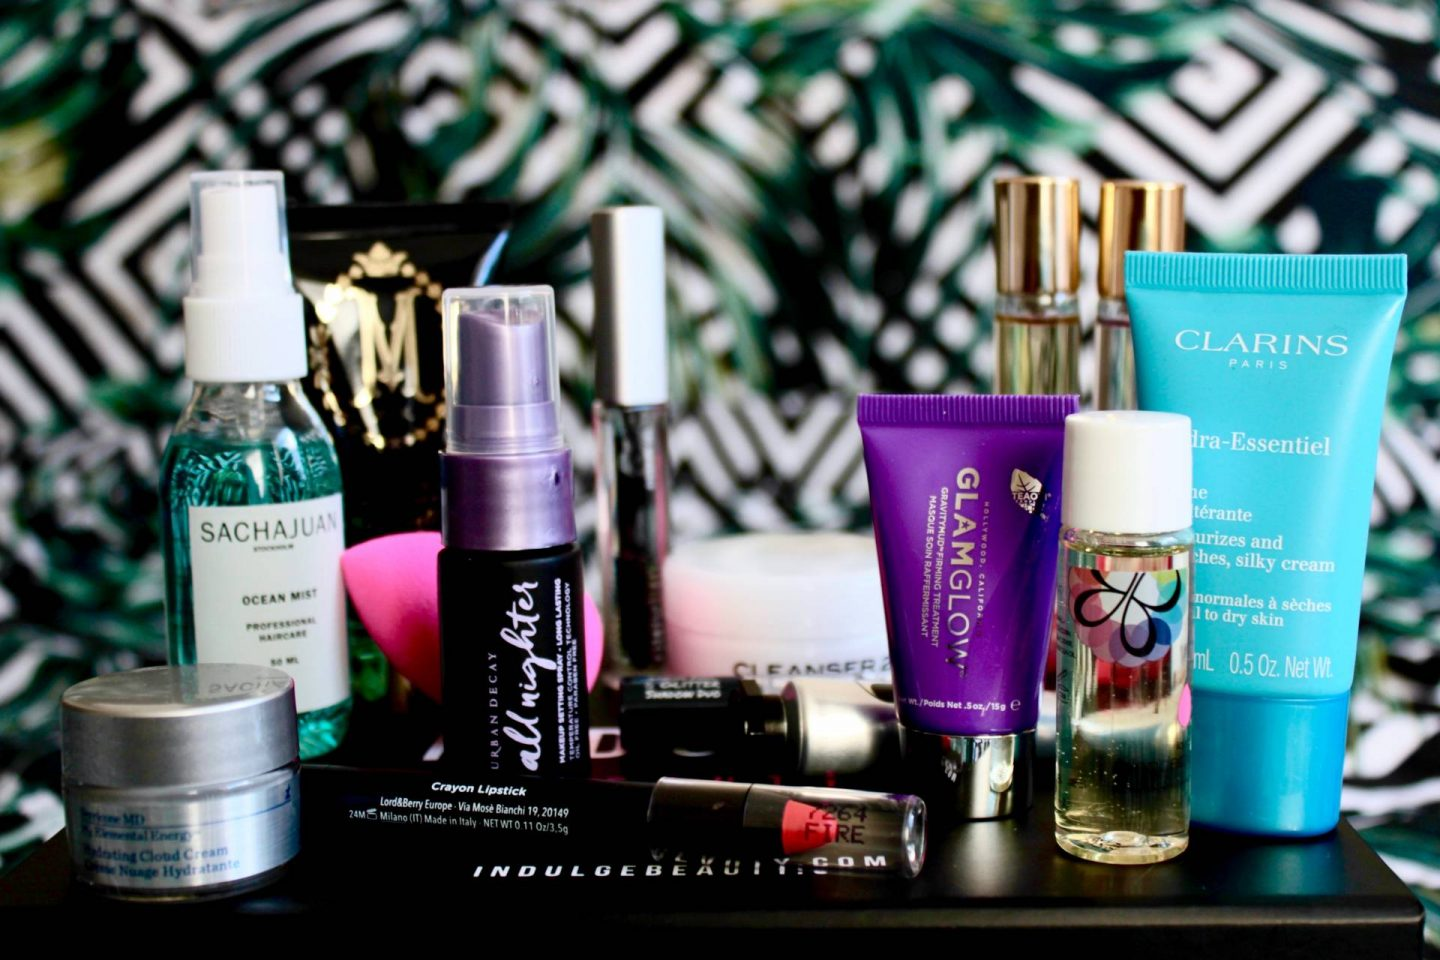 Indulge beauty the edit mini beauty products